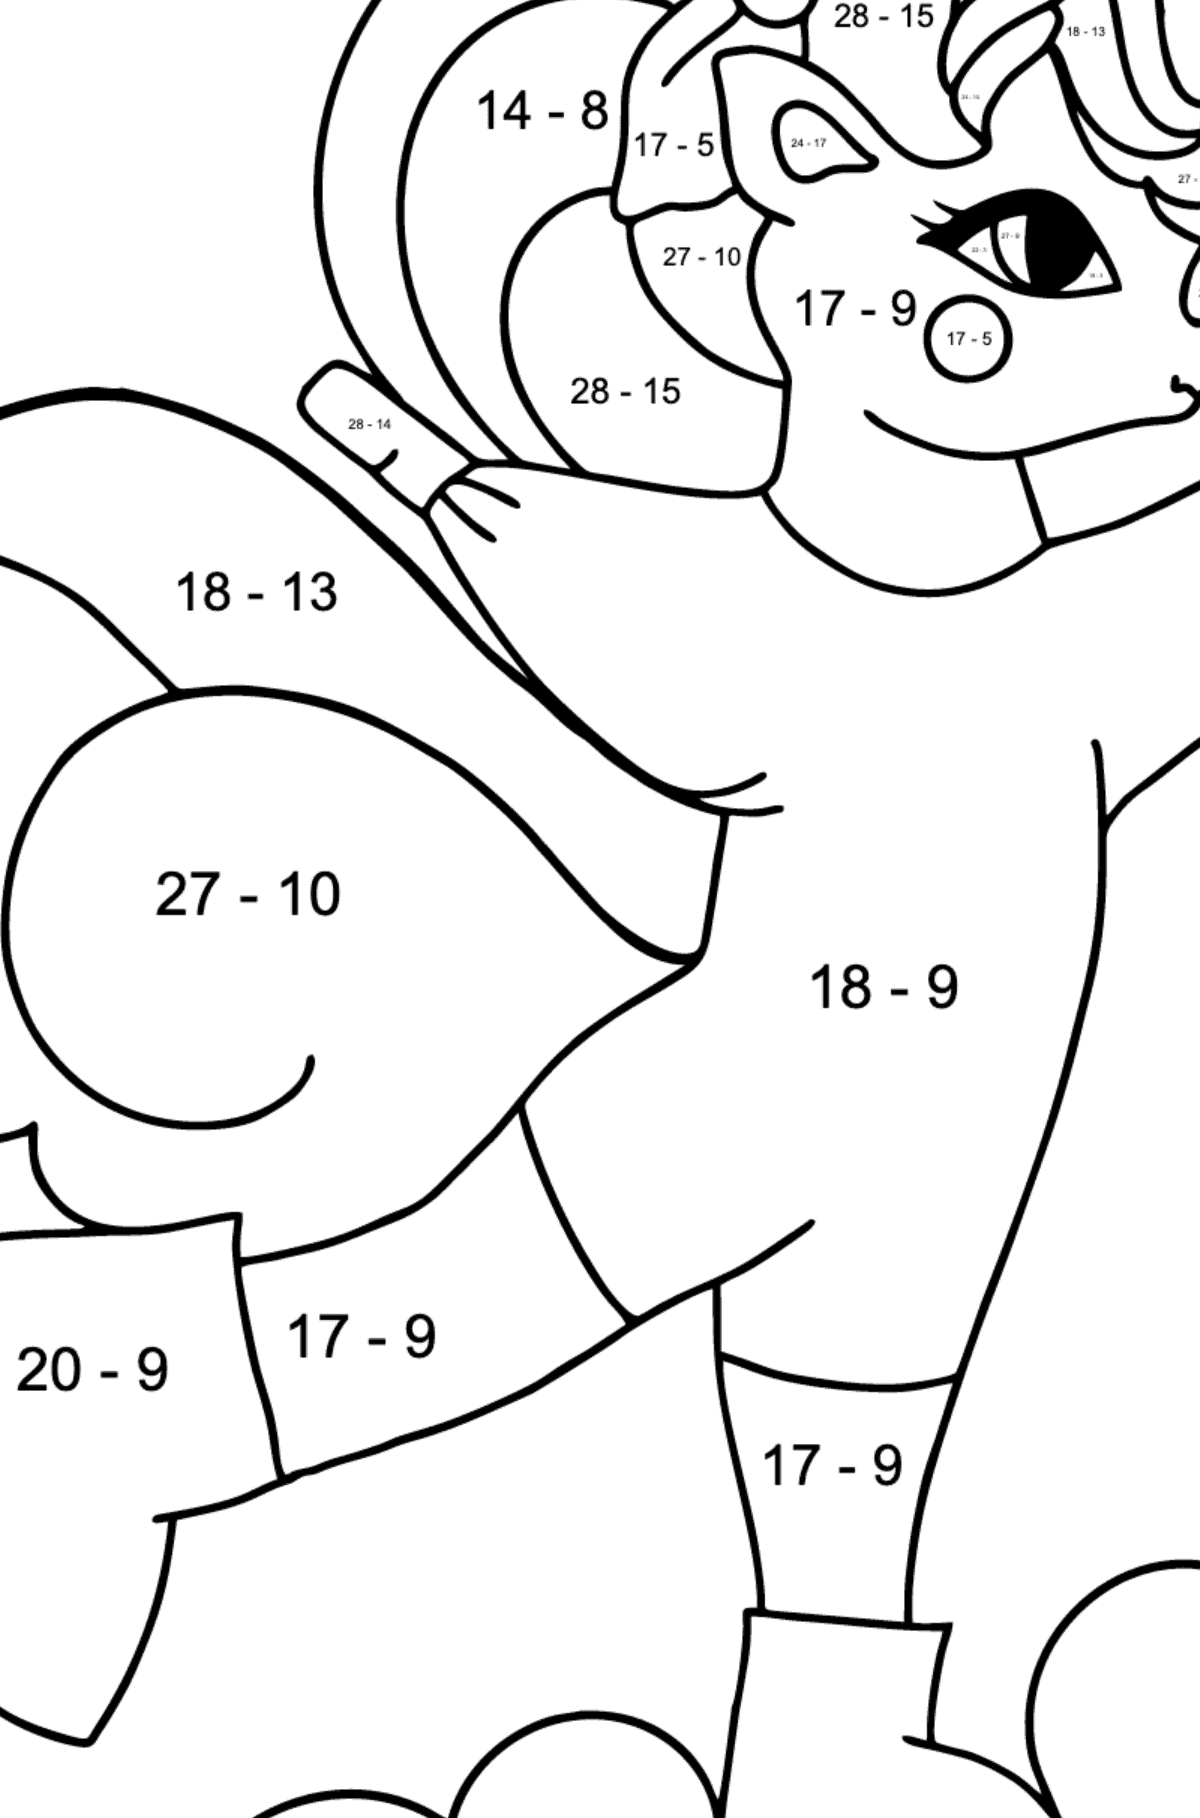 Complex Coloring Page - A Unicorn on Skates - Math Coloring - Subtraction for Children